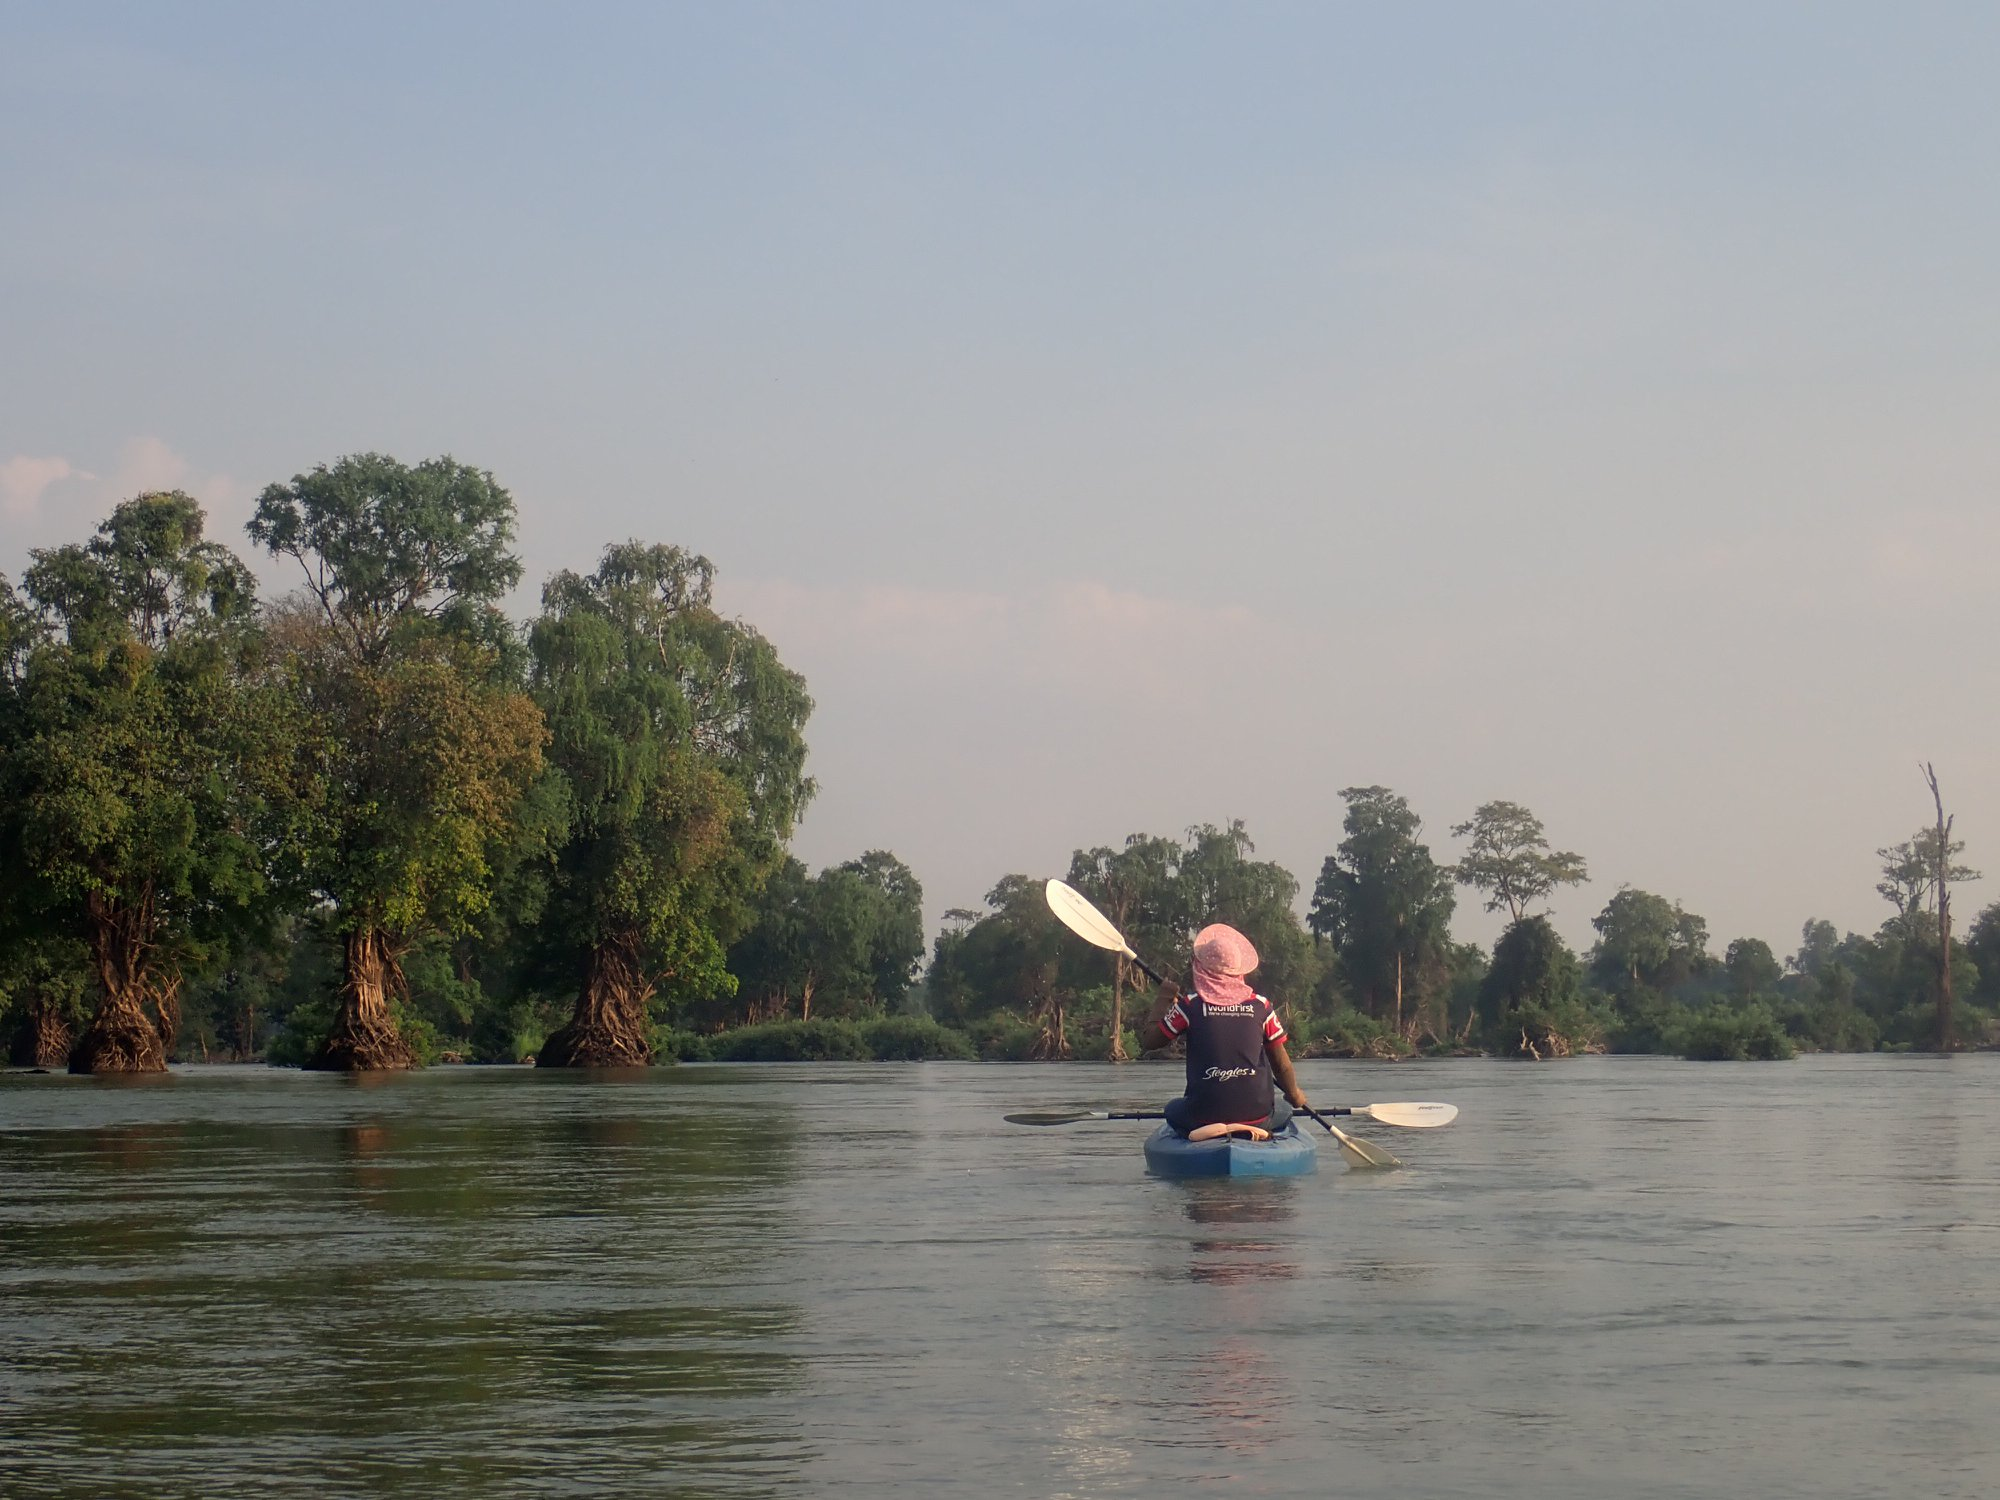 Kayaking on the Mekong River with Irrawaddy Dolphins